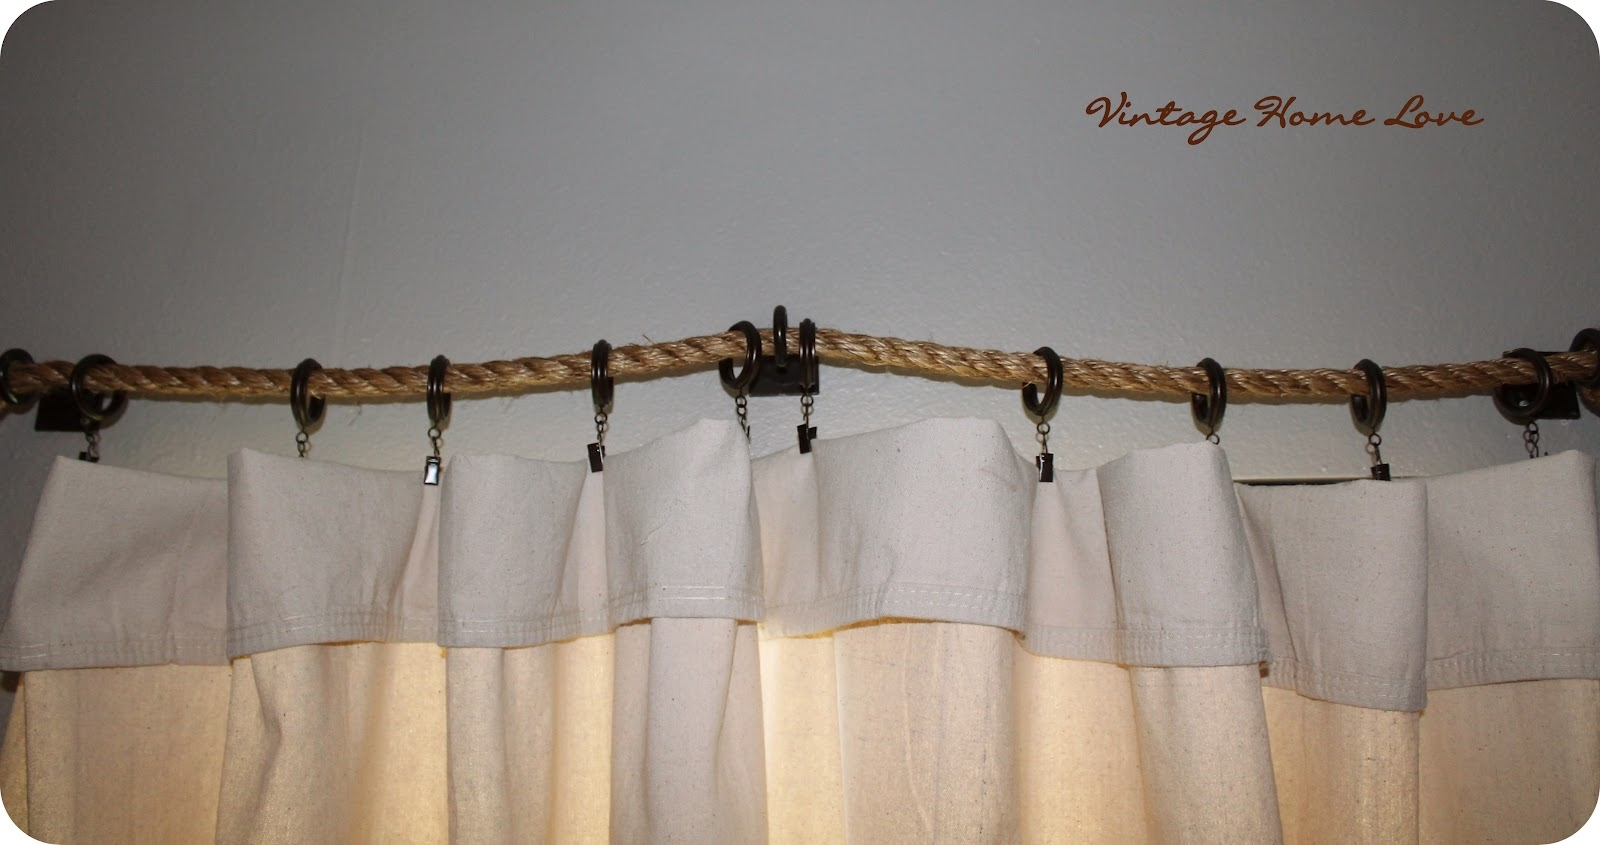 Vintage Home Love Rope Curtain Rod And Diy Curtains In Nautical Curtain Rods (Image 24 of 25)